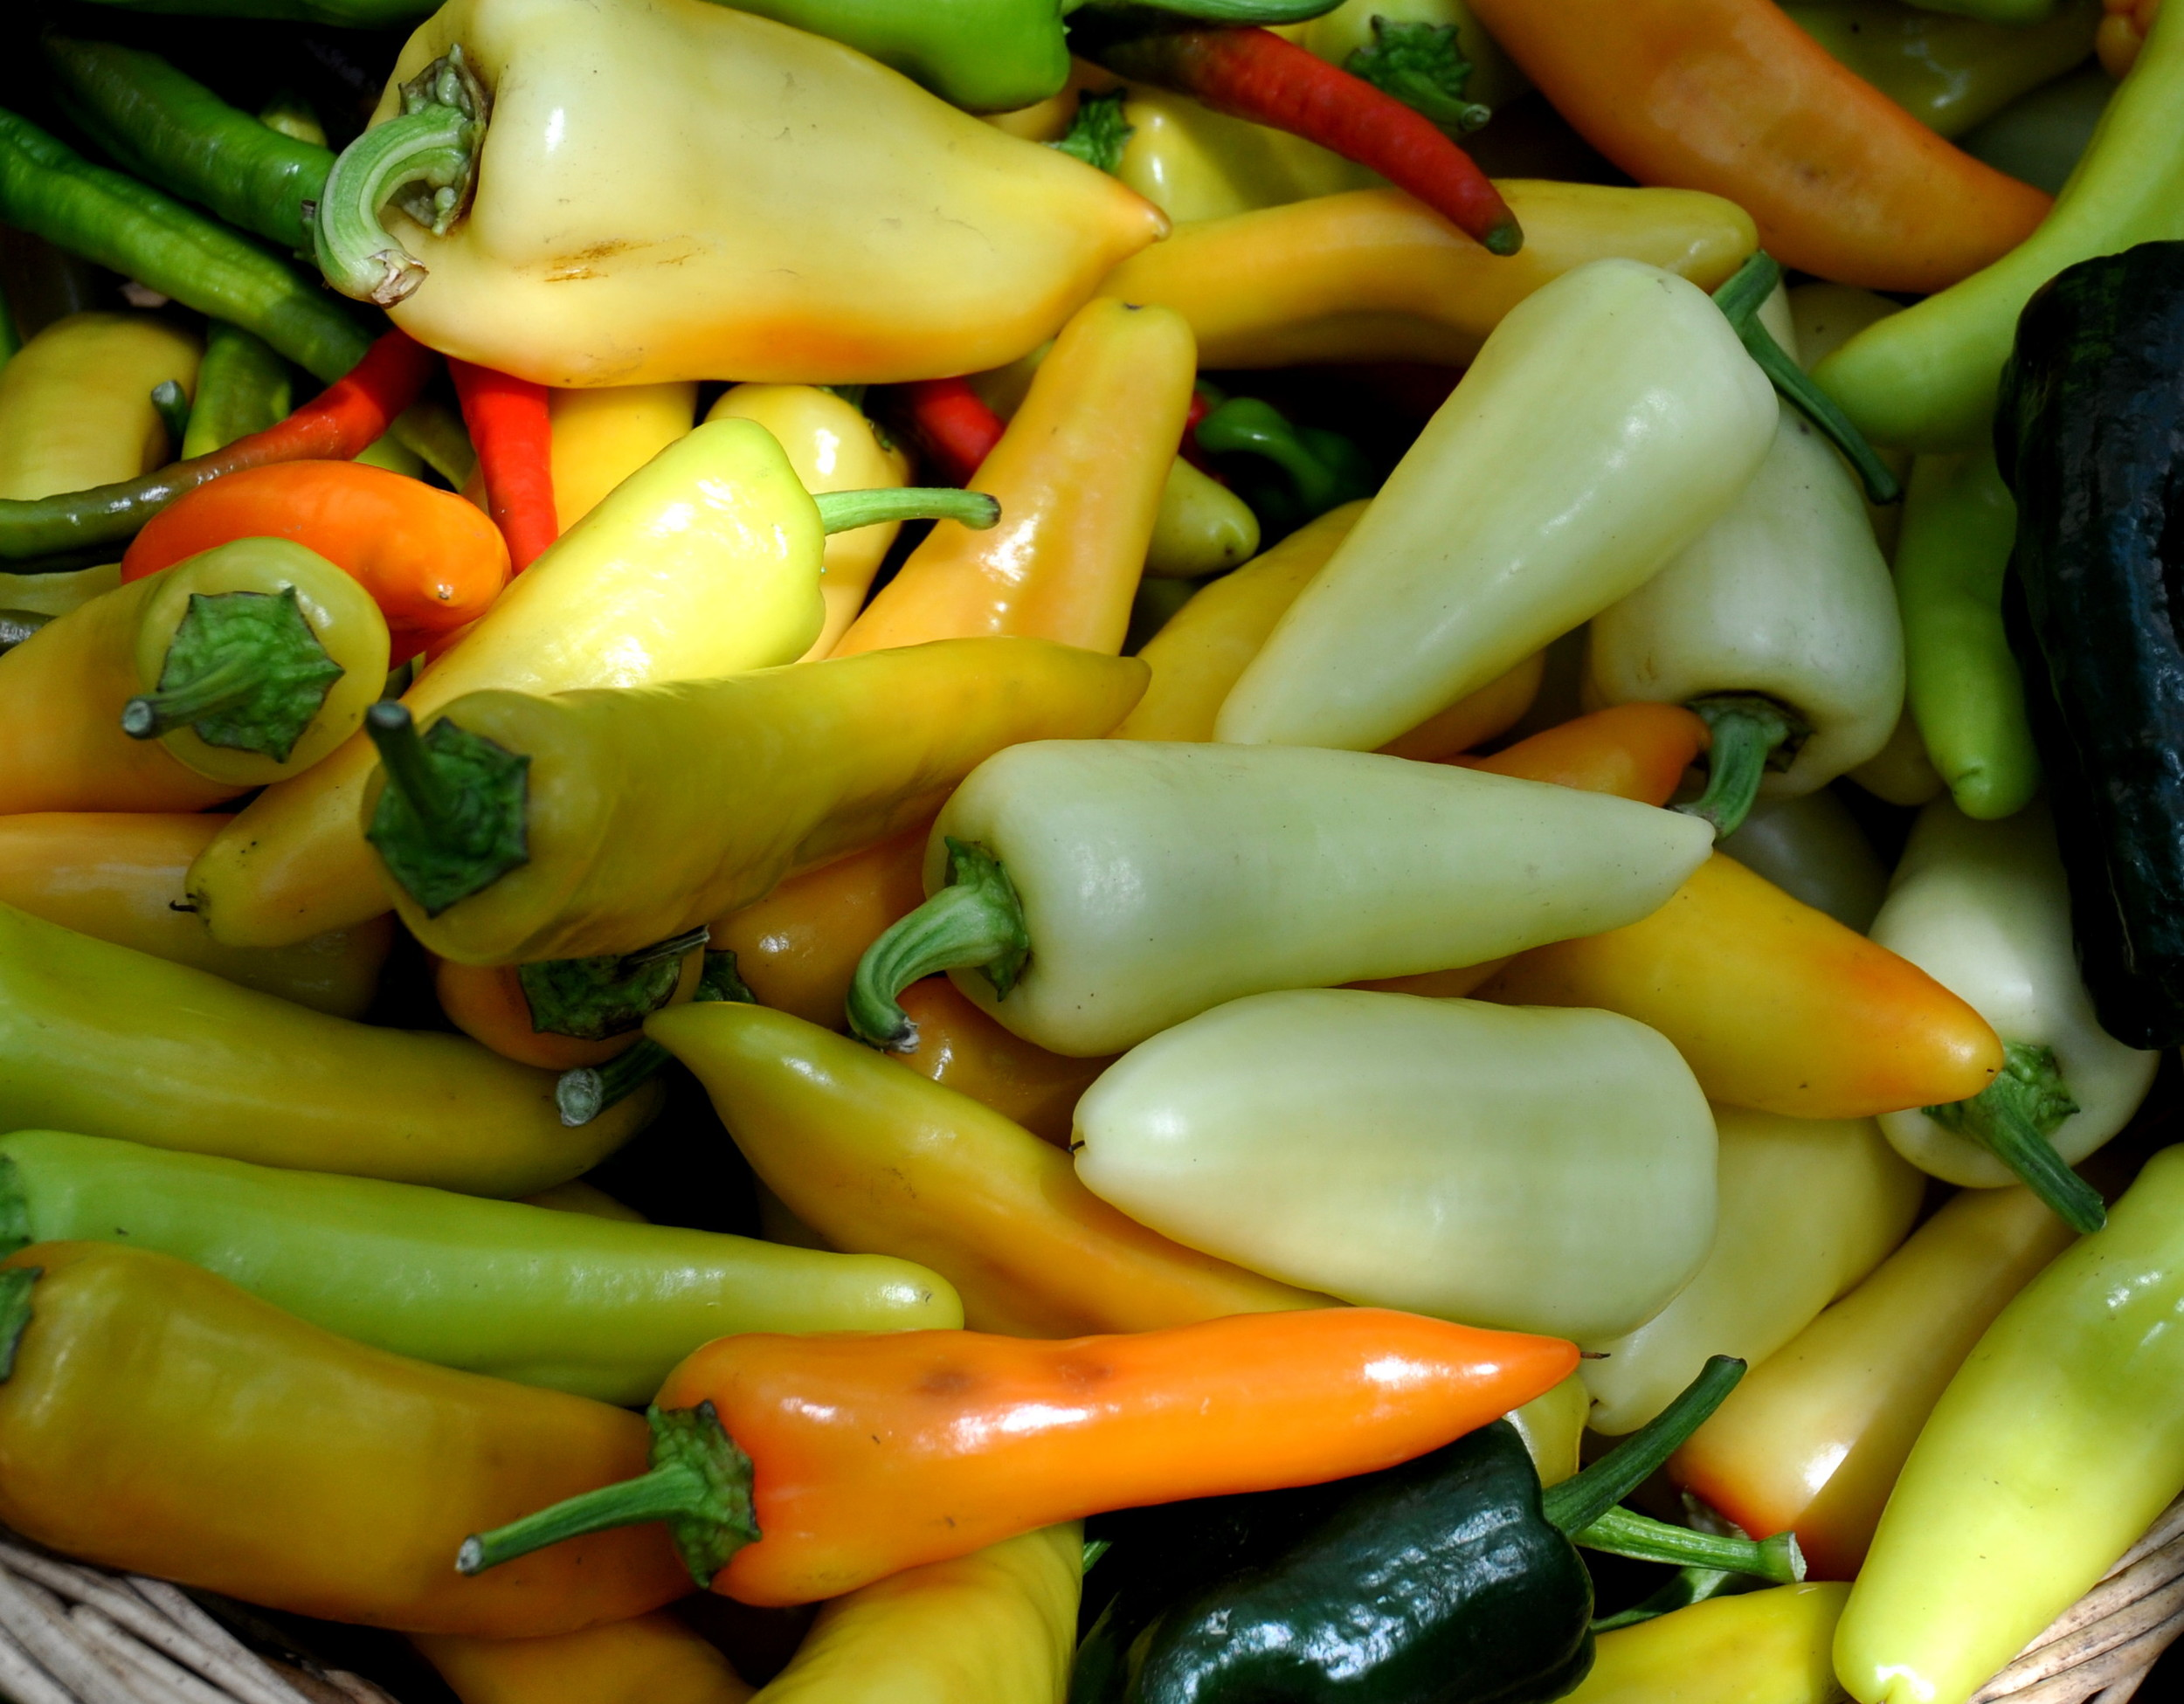 Peppers from Colinwood Farms. Photo copyright 2013 by Zachary D. Lyons.